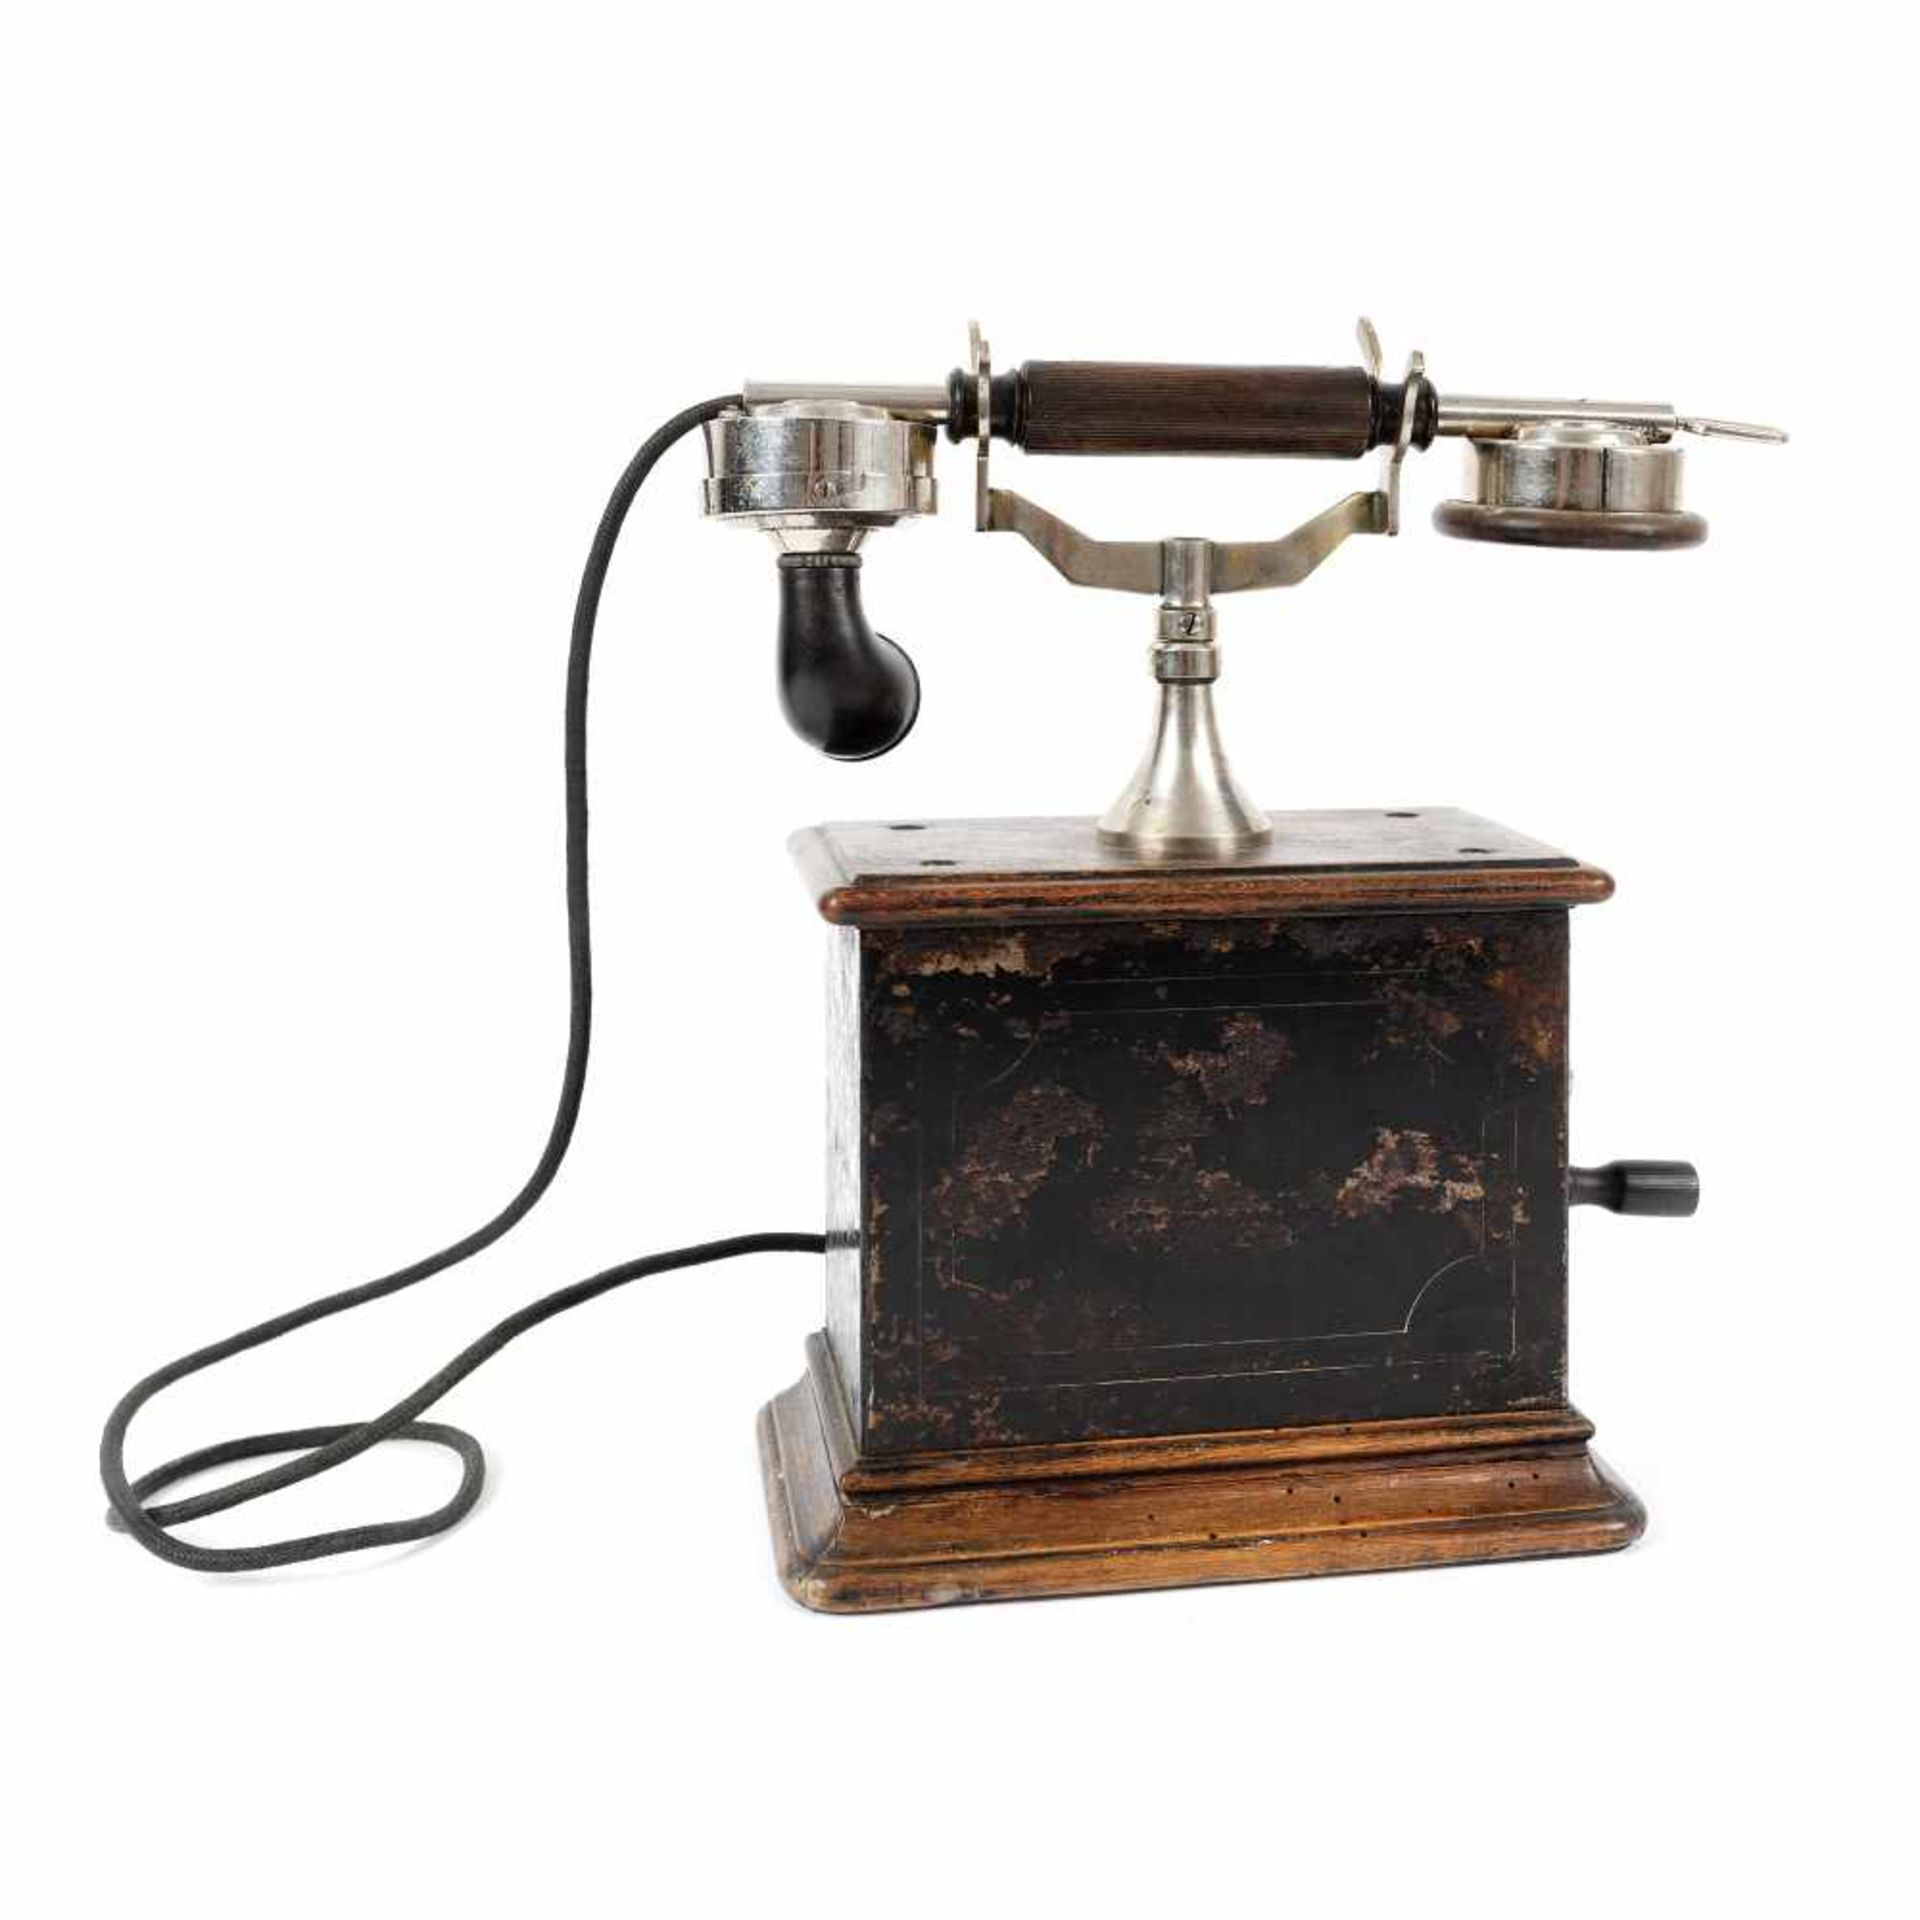 Office phone, early 20th century